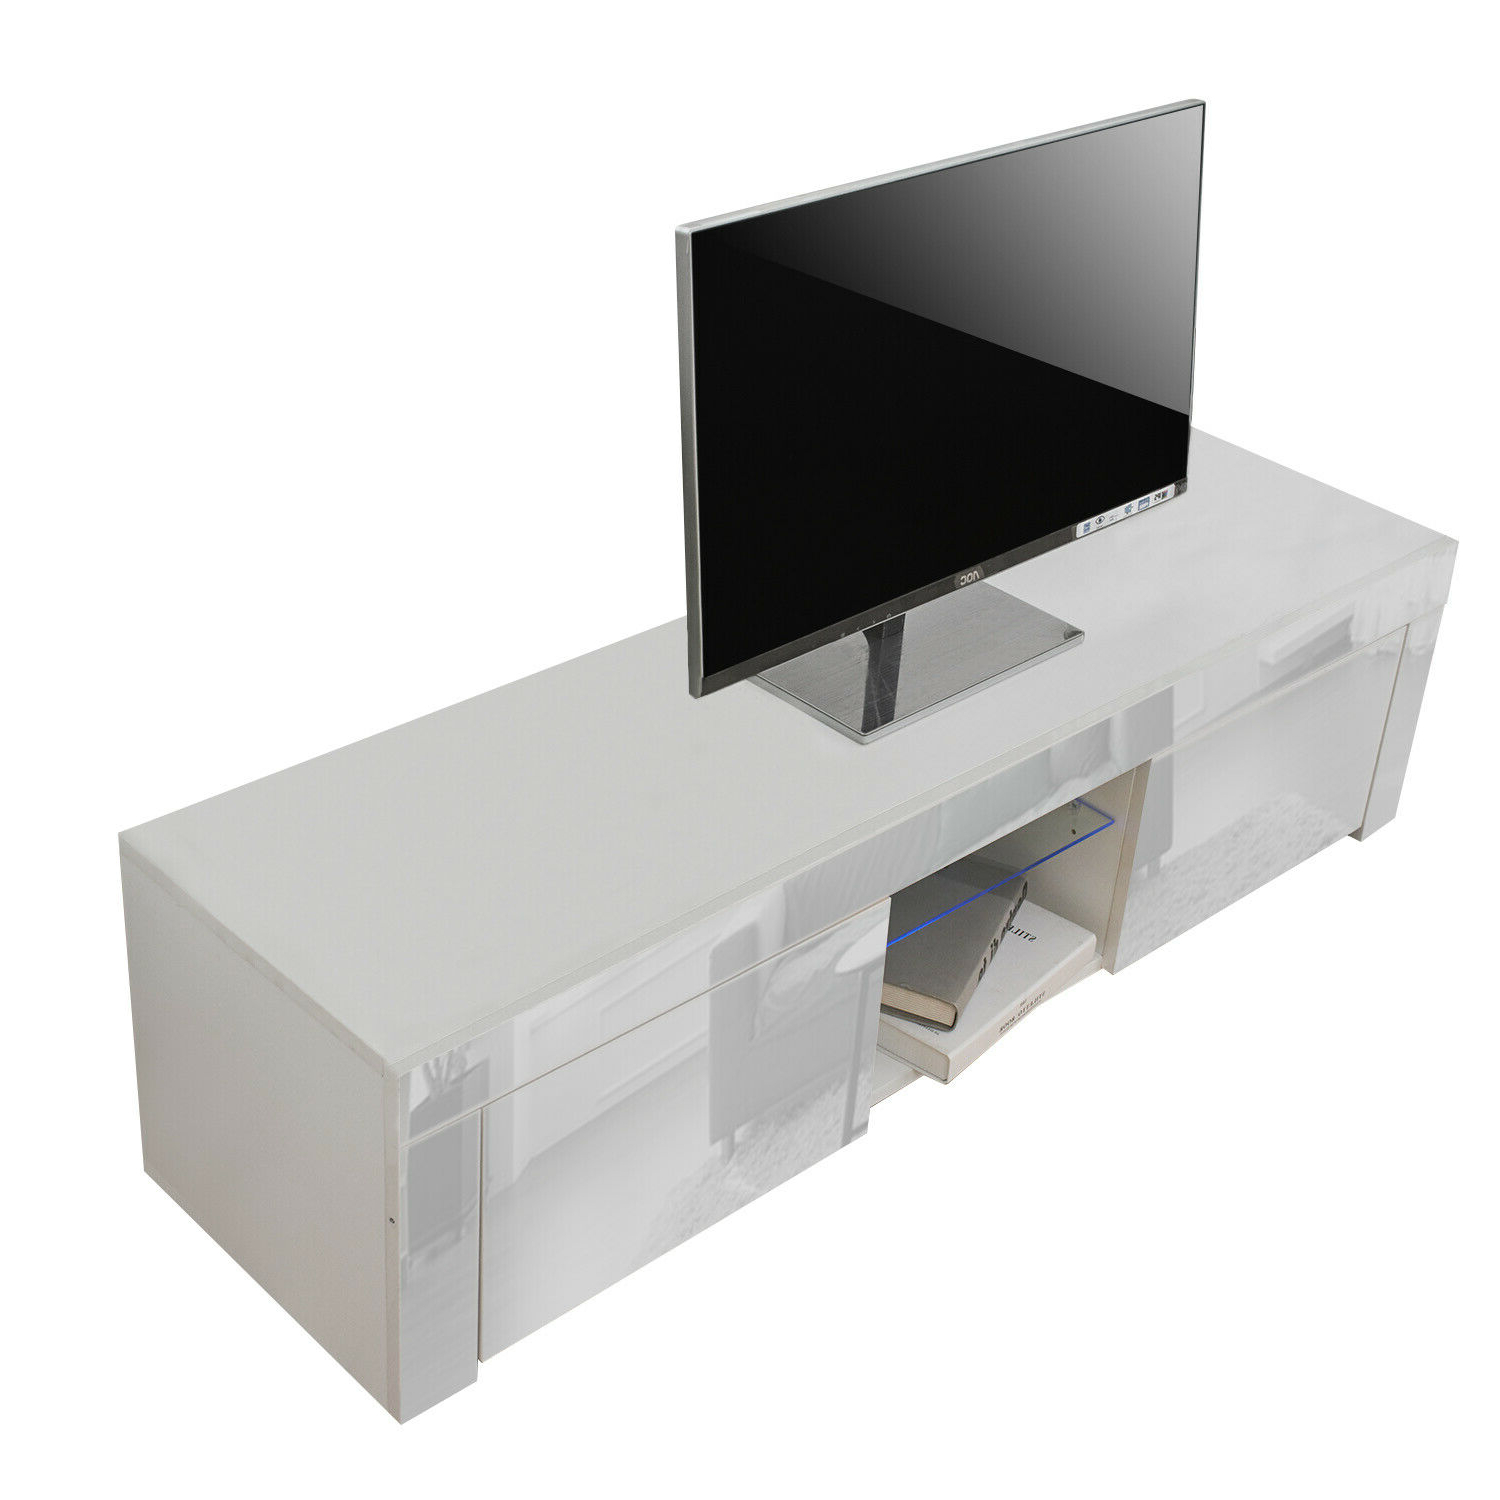 130cm Tv Unit Cabinet Tv Stand Storage Drawer High Gloss Within Solo 200 Modern Led Tv Stands (View 15 of 20)